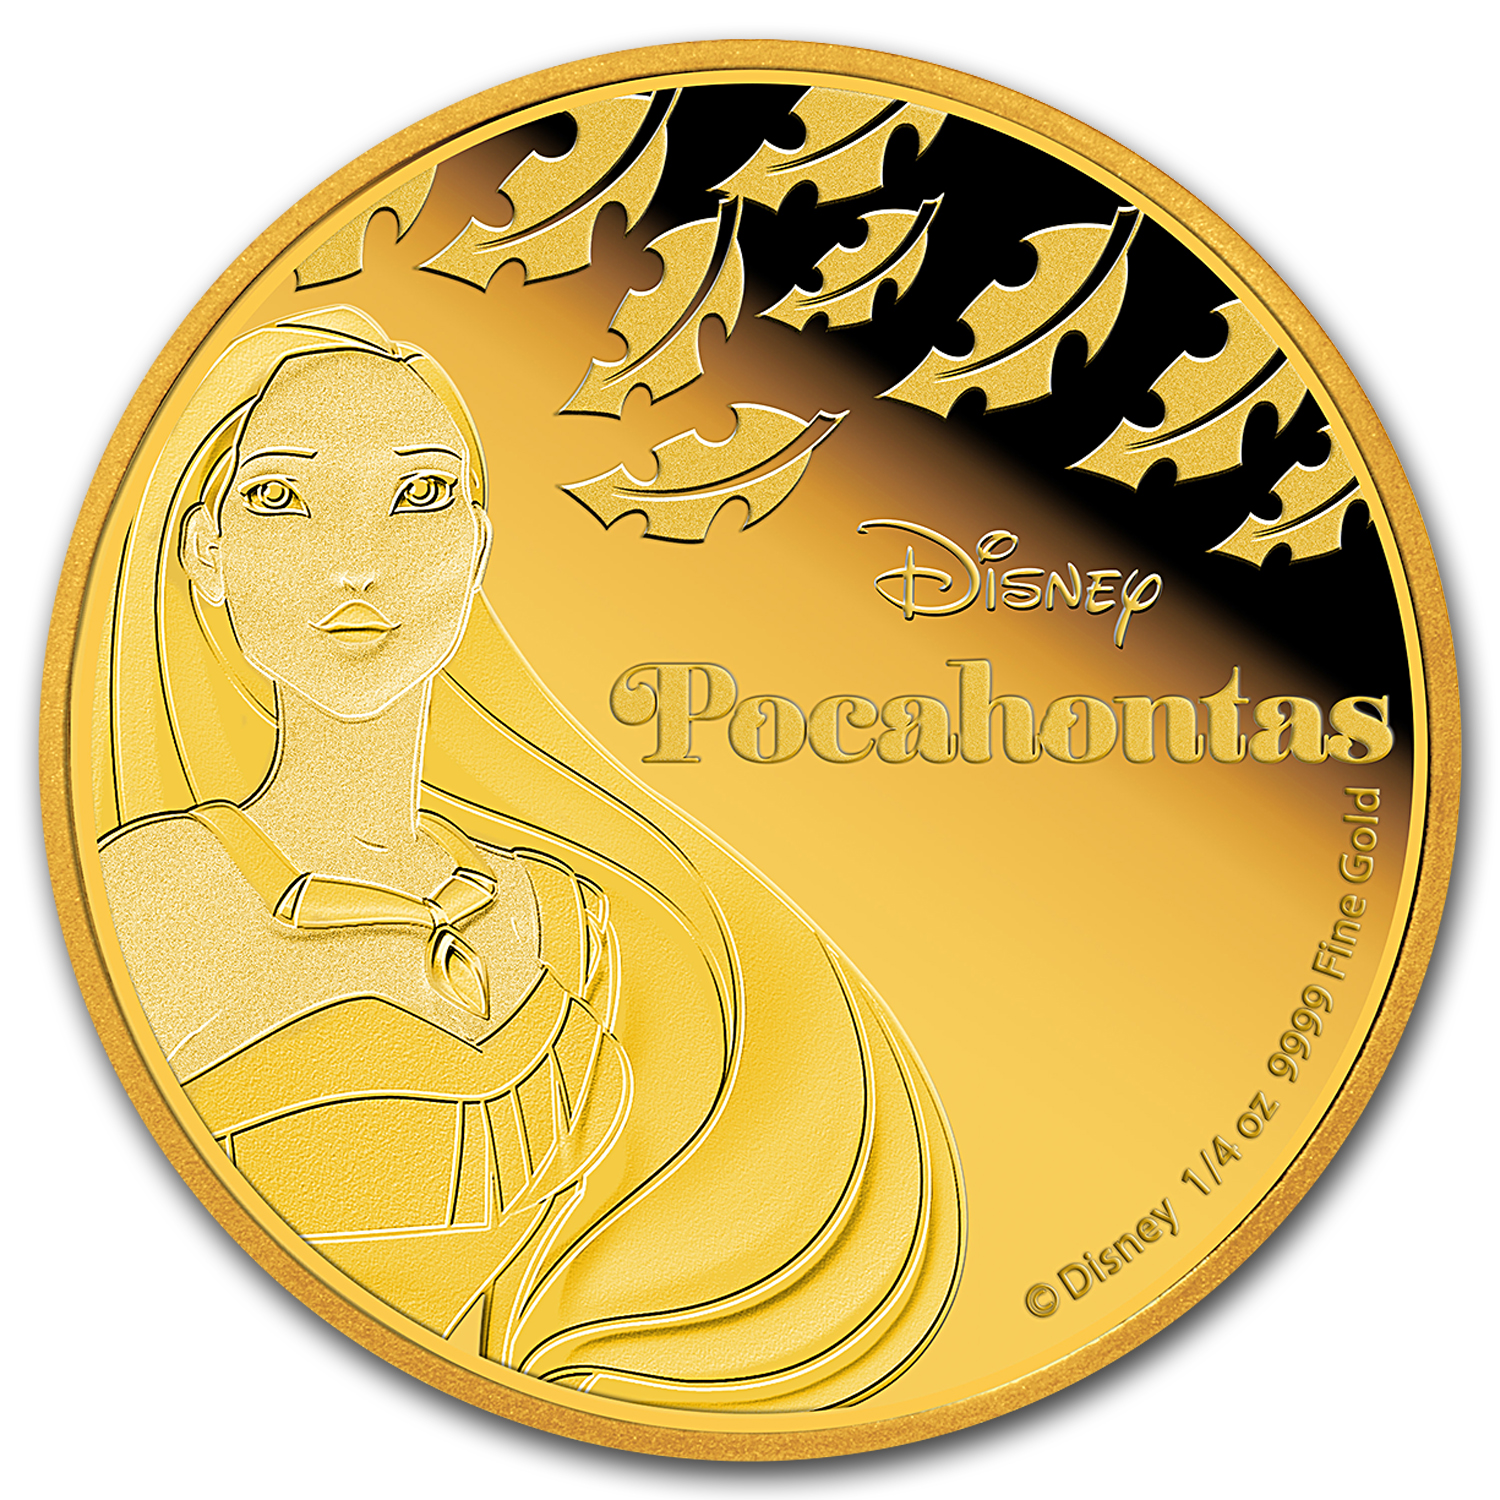 2016 Niue 1/4 oz Proof Gold $25 Disney Princess Pocahontas